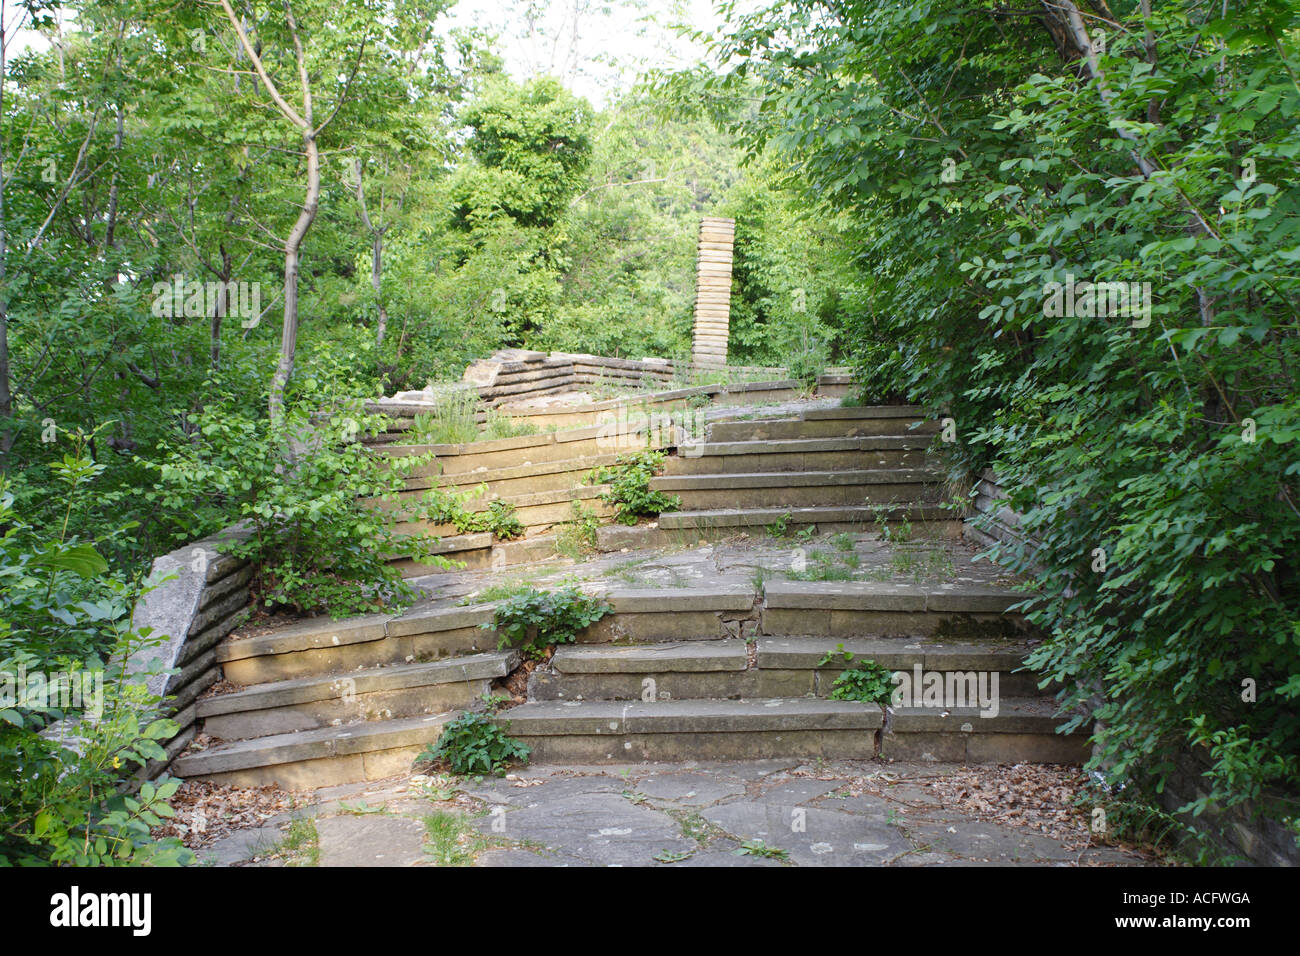 The stairs to the top of  'Haman Bair' - Stock Image